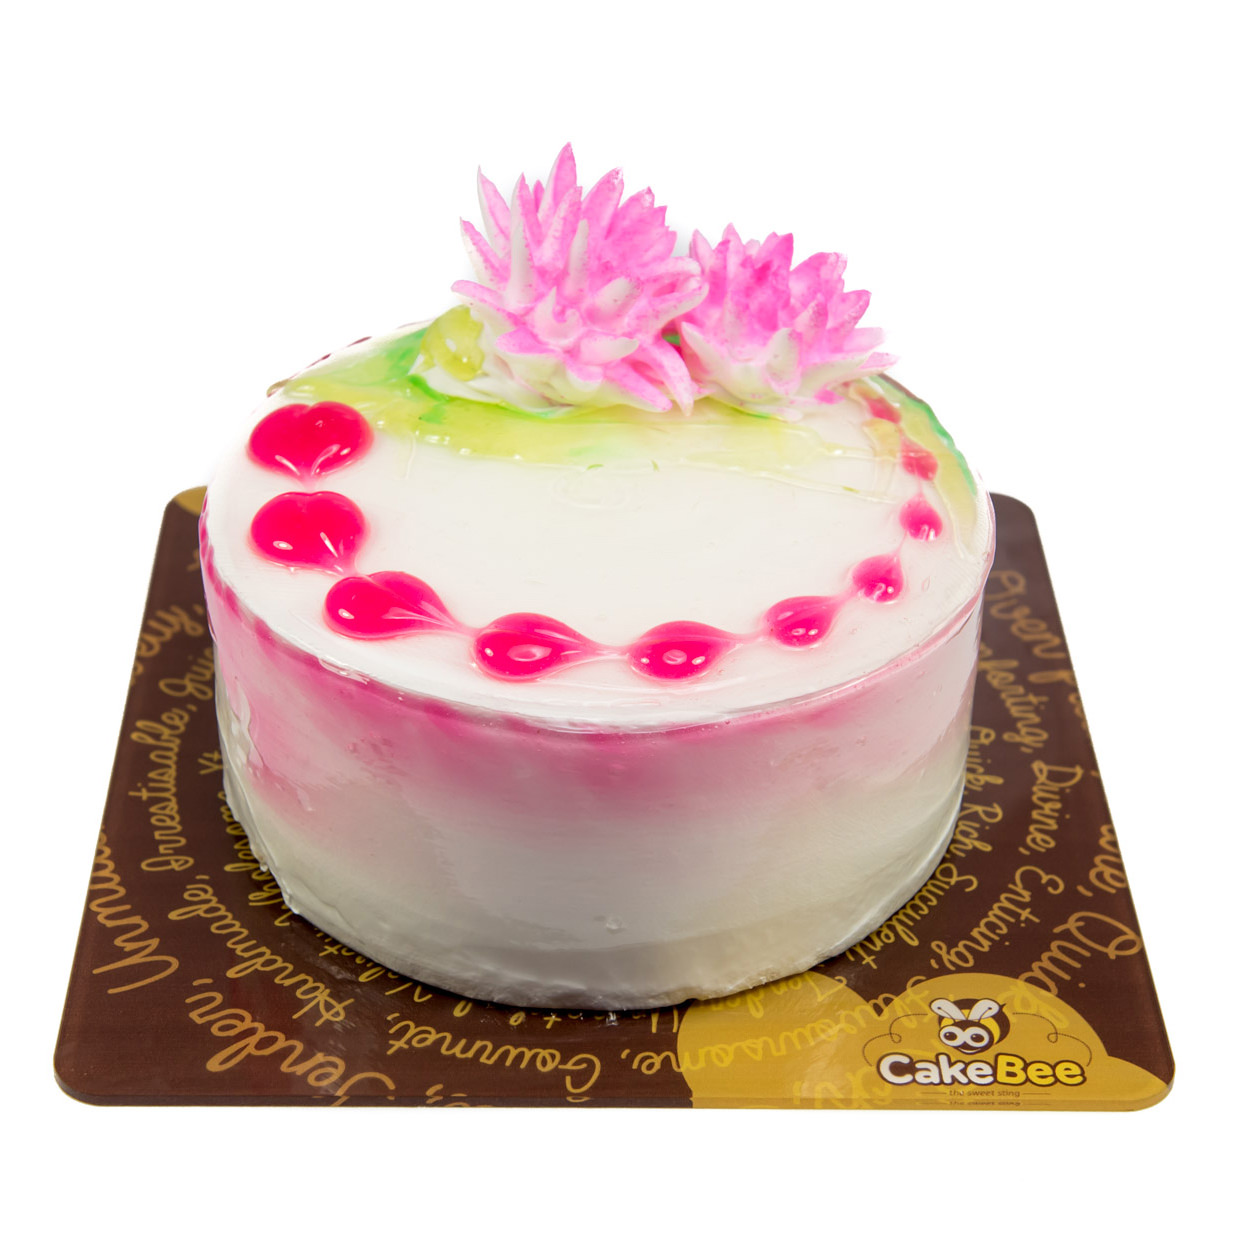 Home Cafe Cakebee Birthday Cakes Luscious Lychee Cake